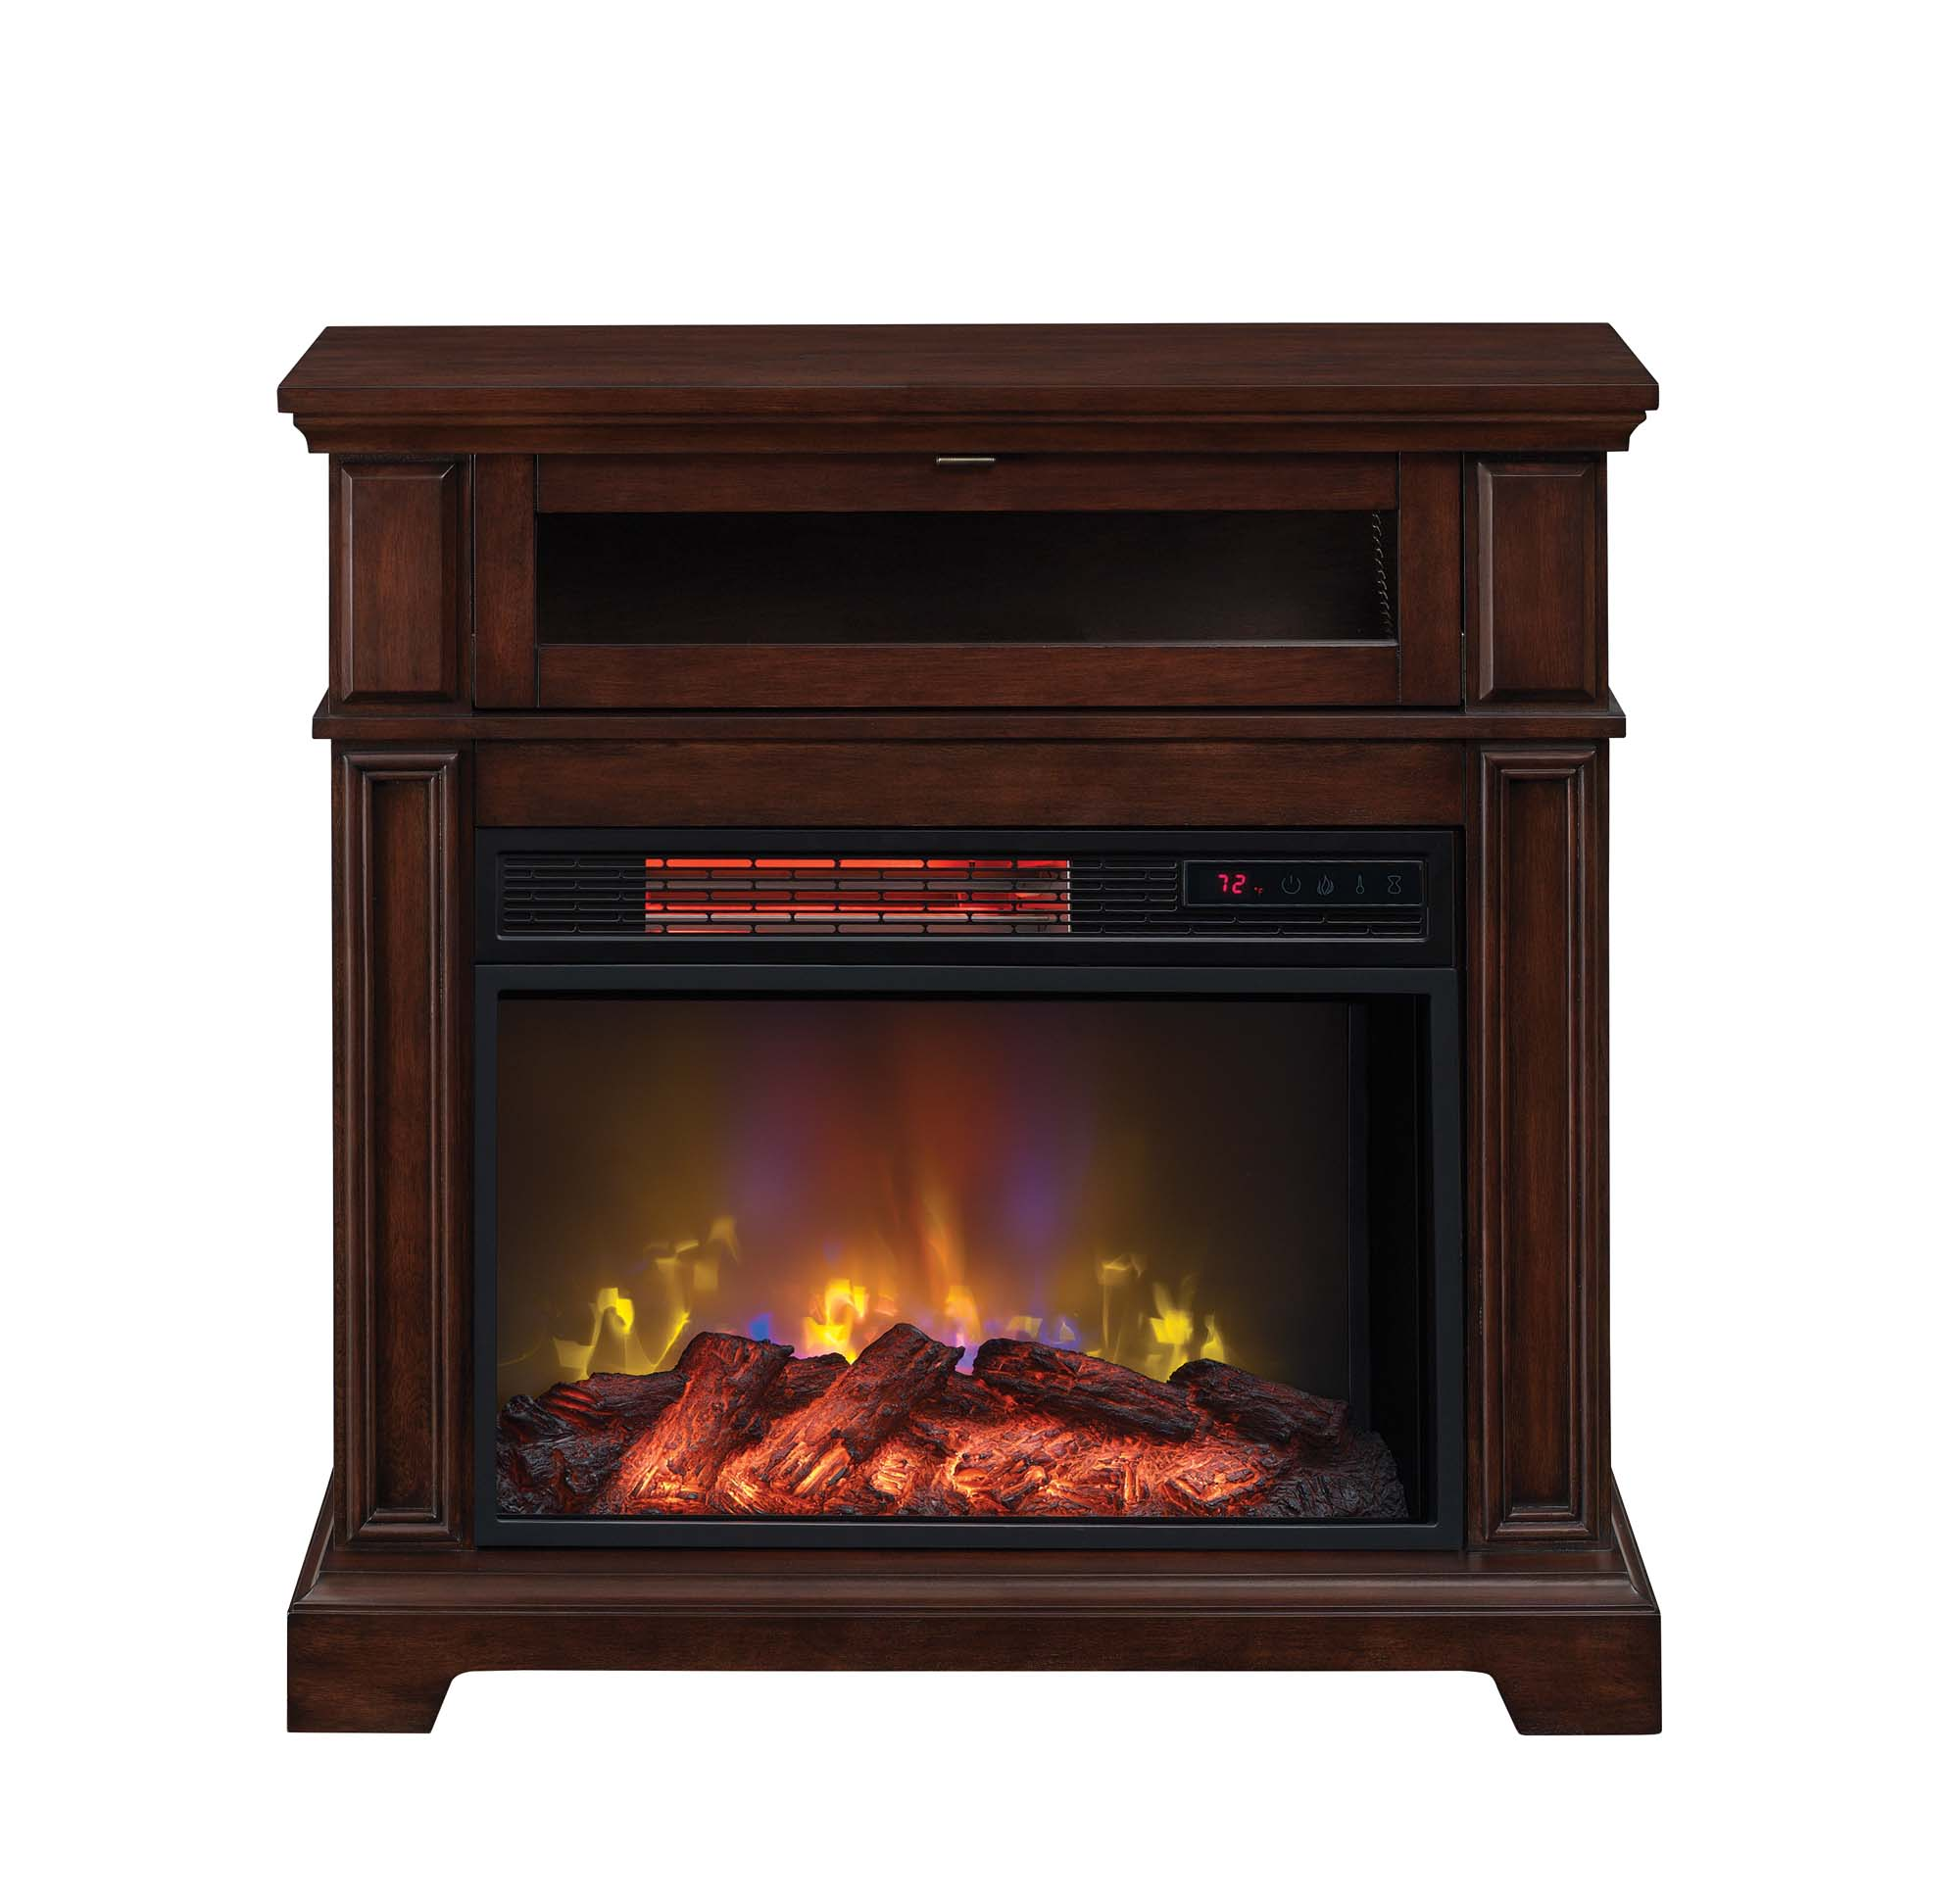 Click here to buy ChimneyFree 40 Infrared Quartz Electric Fireplace, Meridian Cherry by Twin-Star International, Inc..